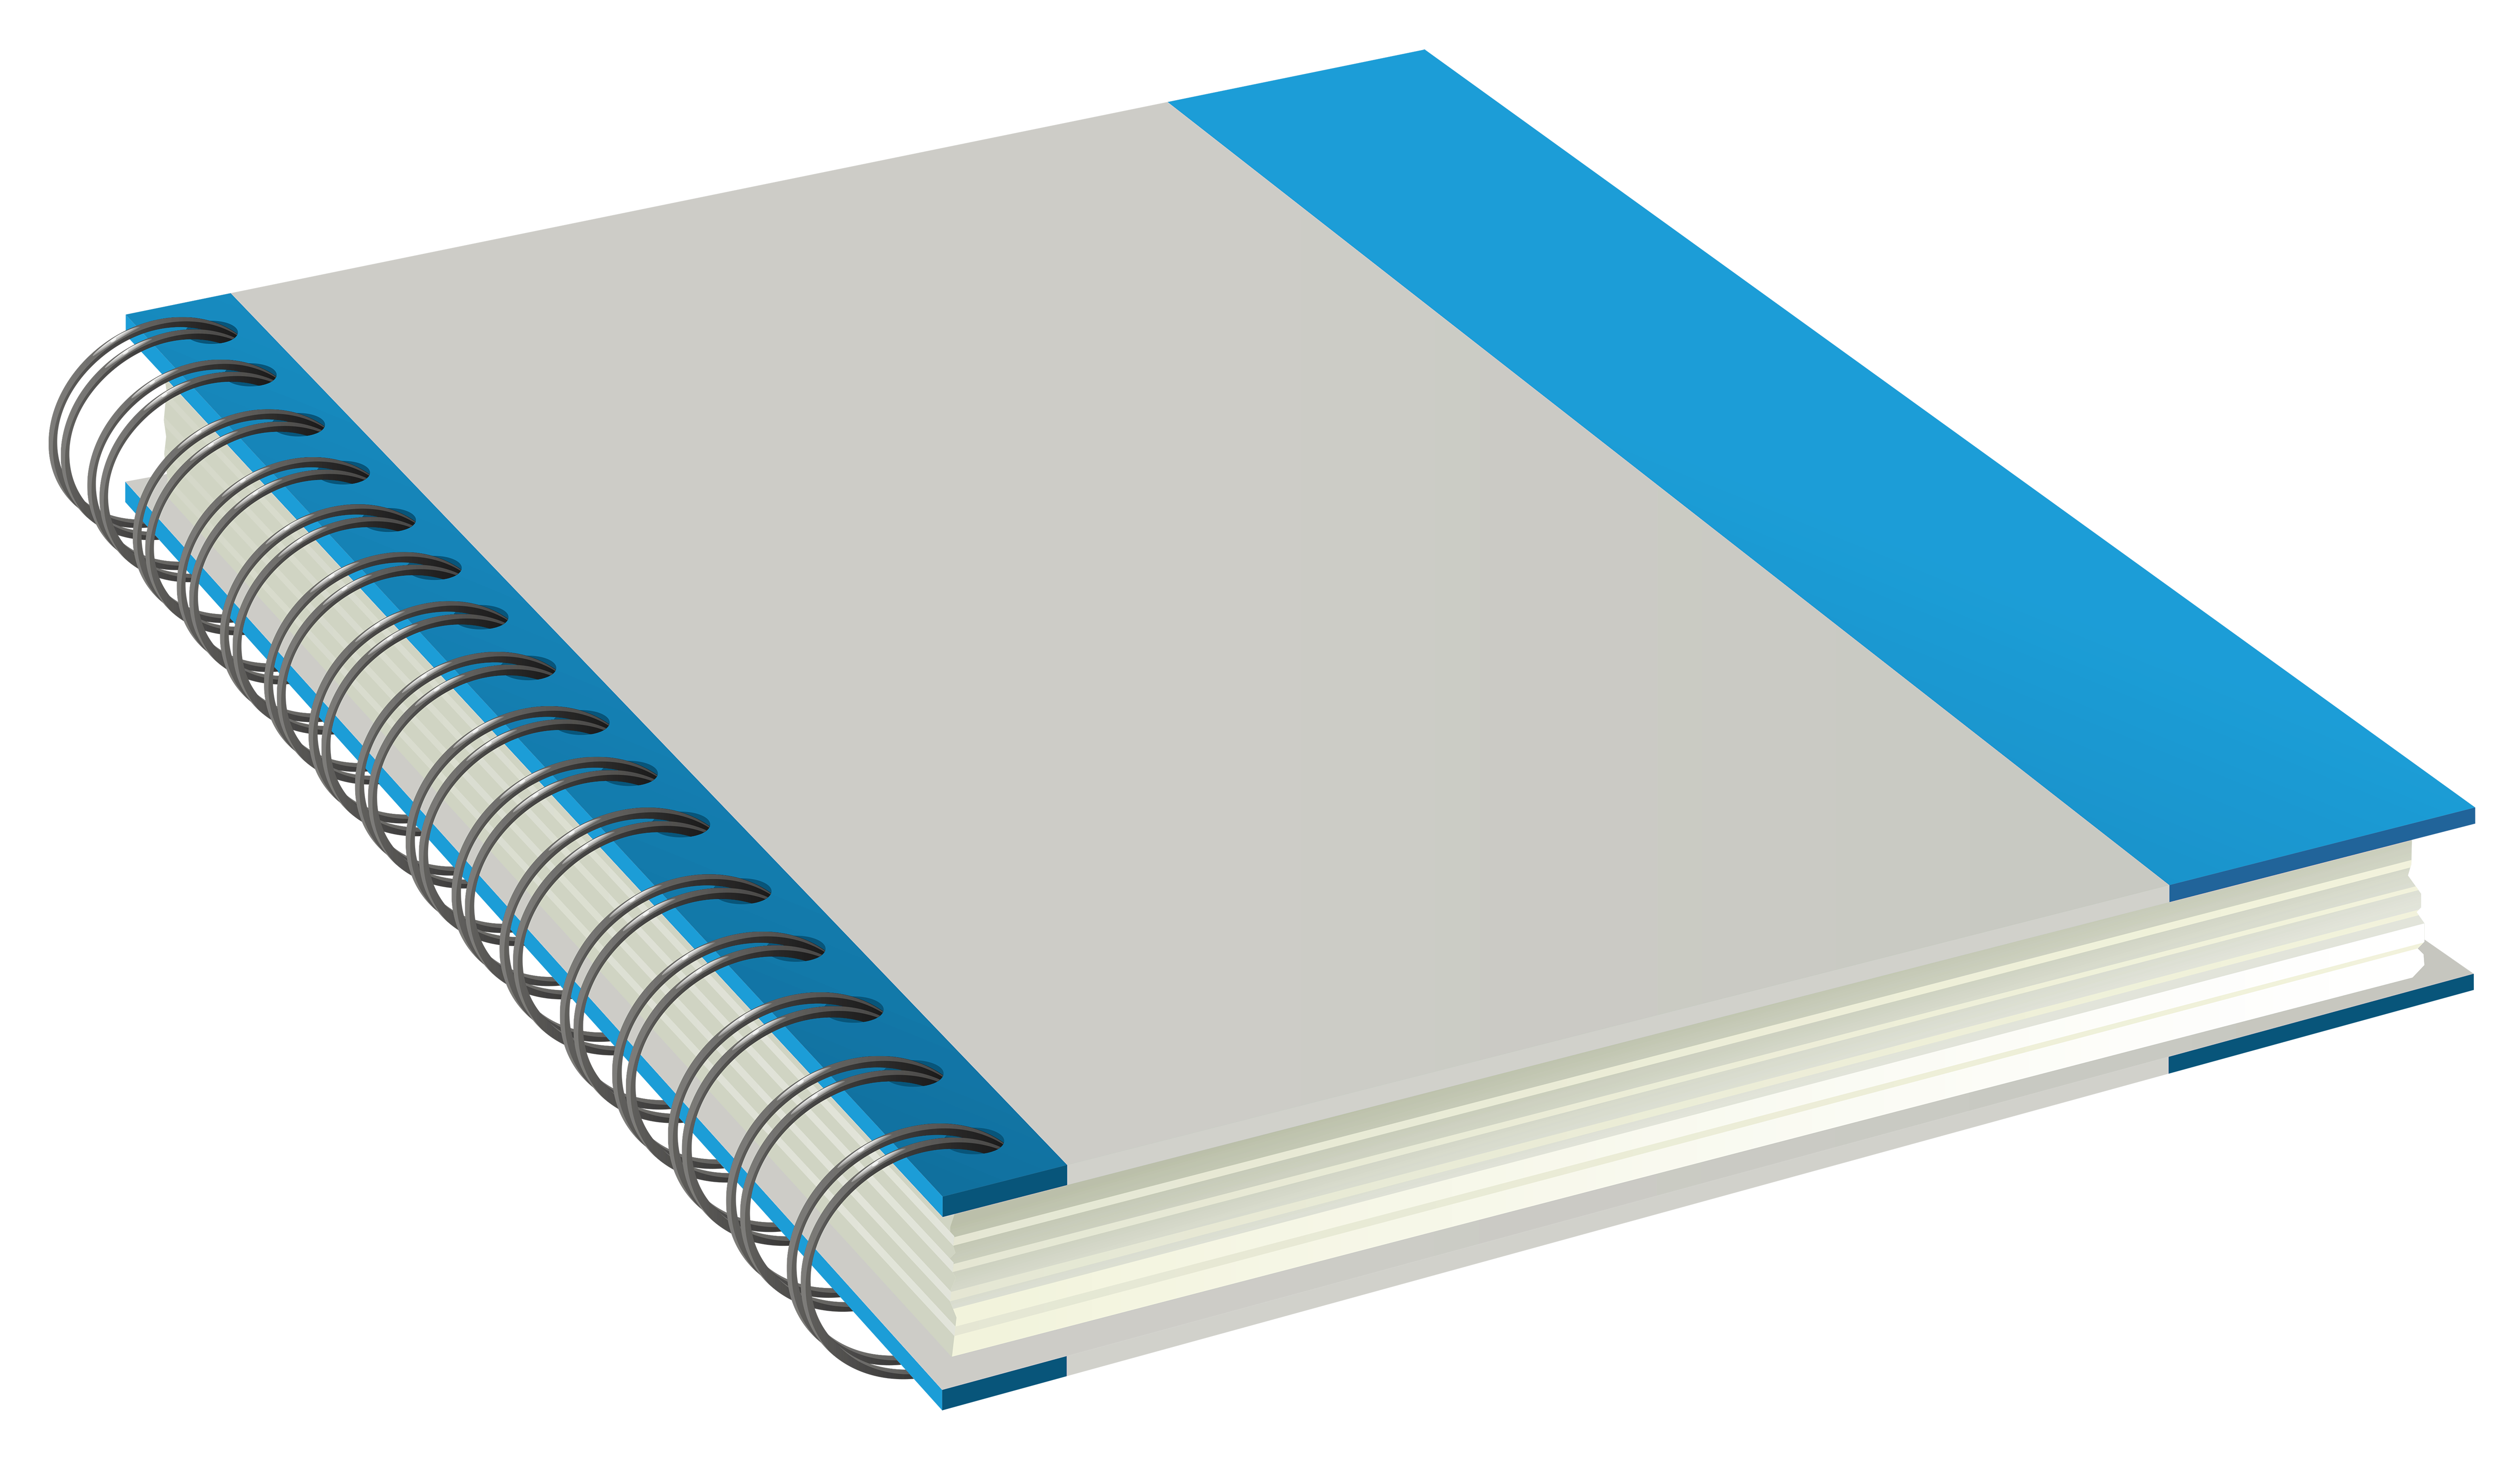 Notebook Download PNG Image High Quality PNG Image